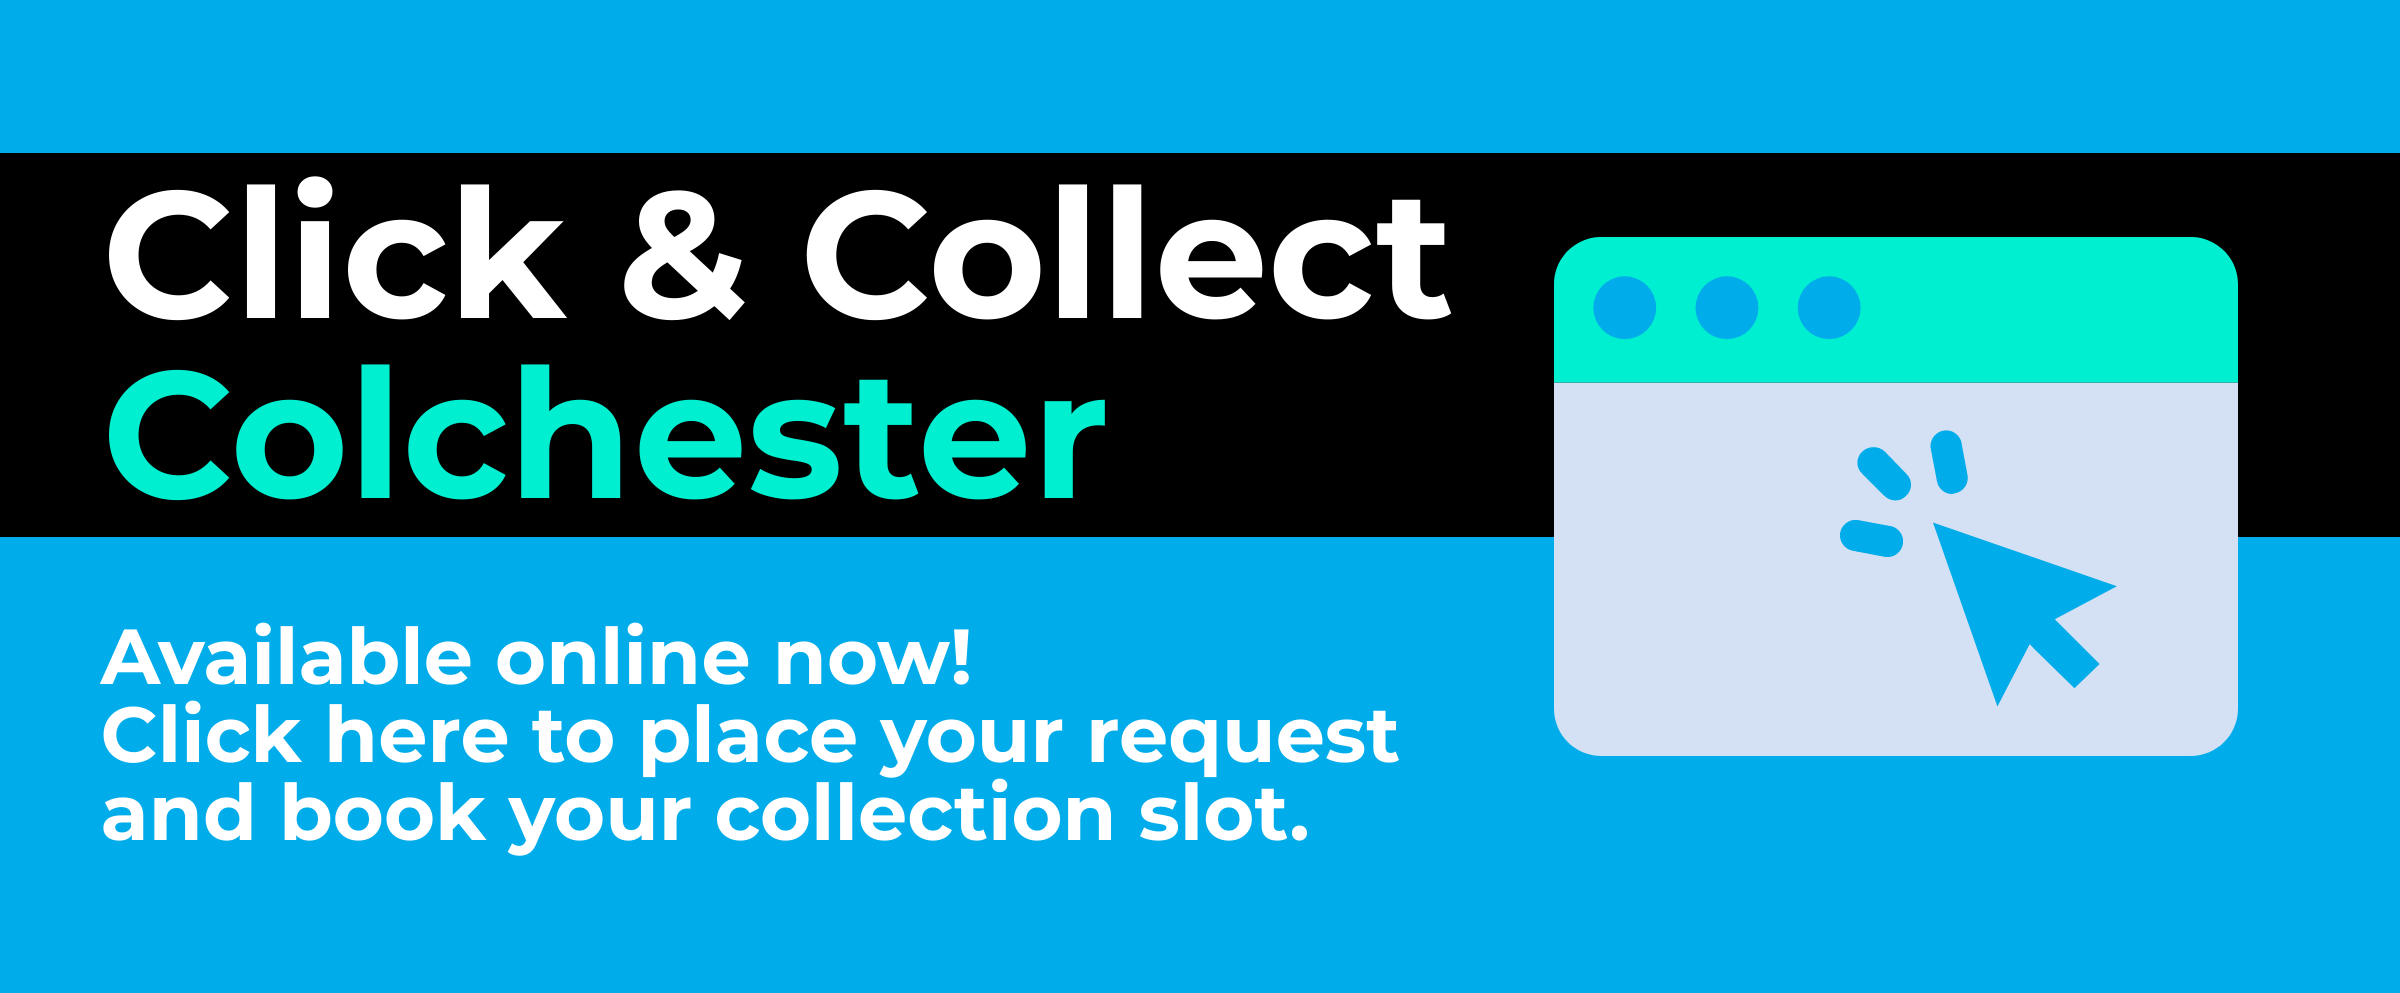 Click and collect colchester coming soon on 3rd august